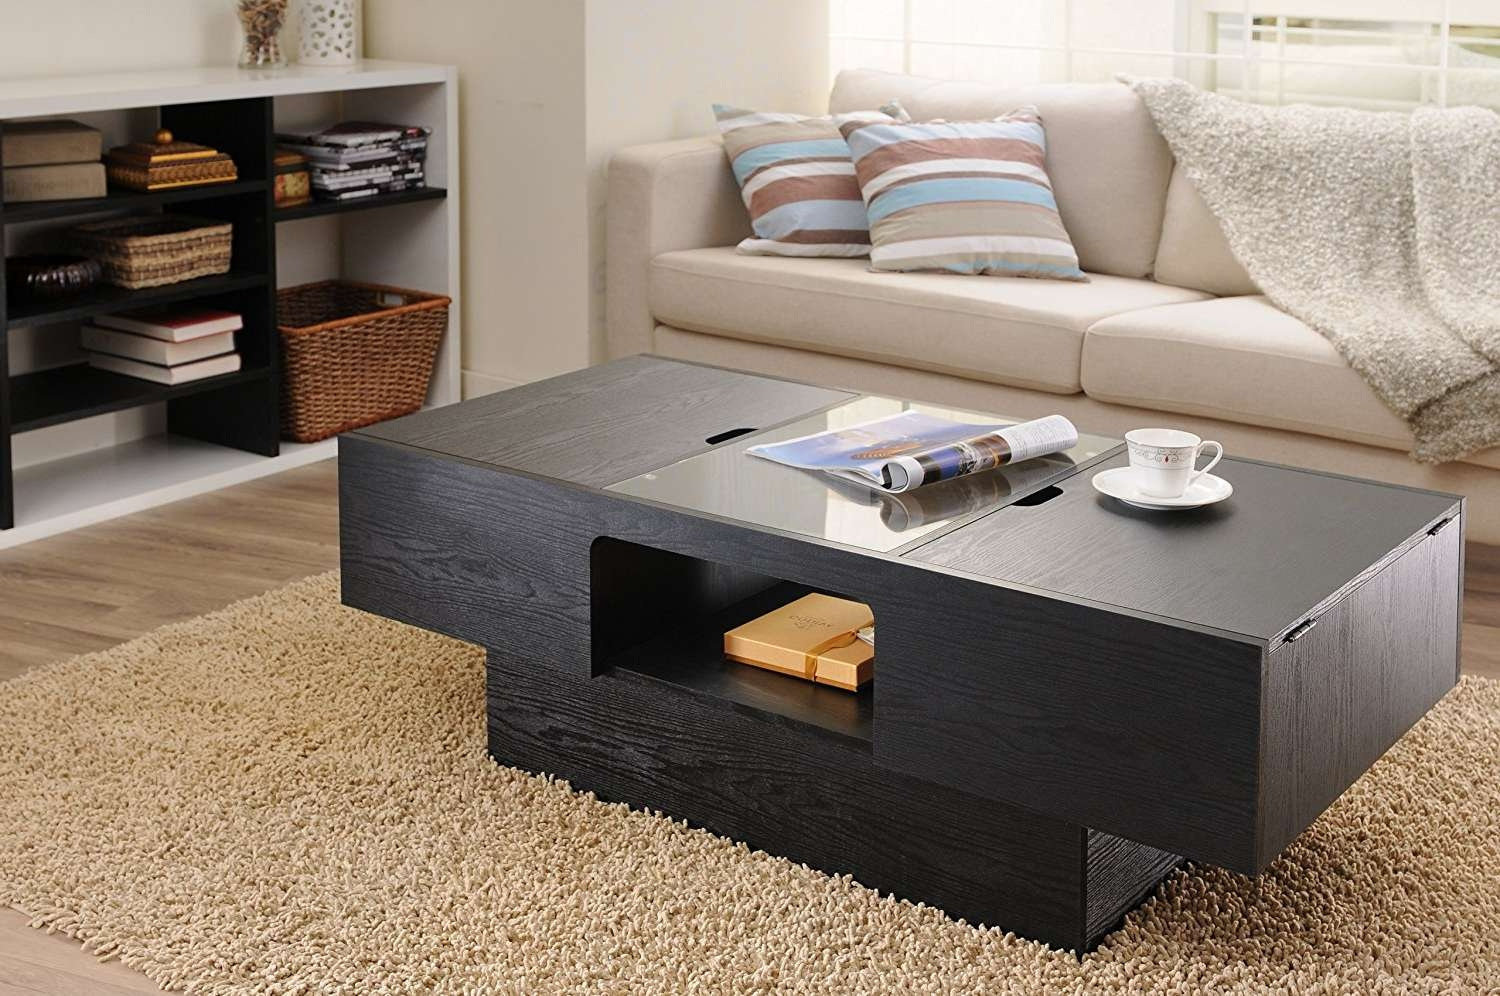 Coffee Tables : Beautiful Storage Small Storage Table Nesting Intended For 2017 Narrow Coffee Tables (View 20 of 20)